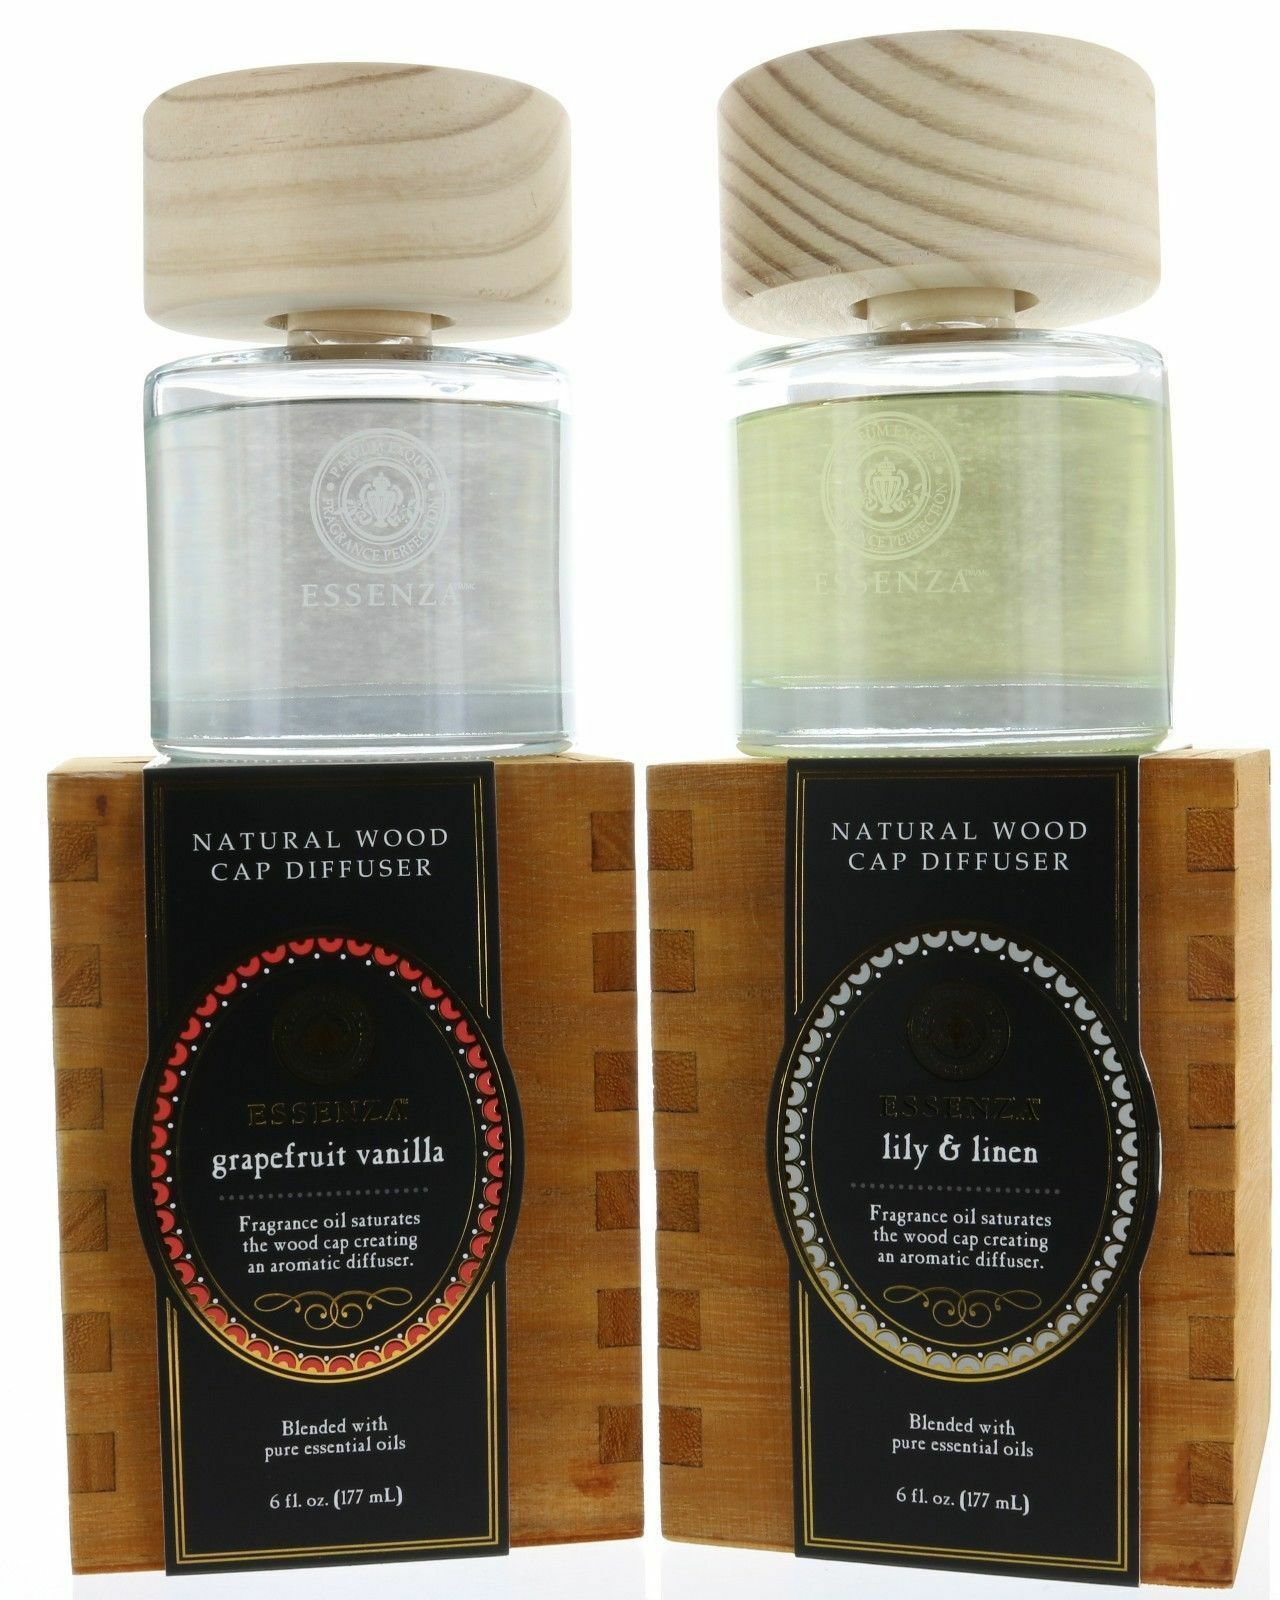 Essenza Natural Wood Cap Reed Diffuser, Blended with Pure Es